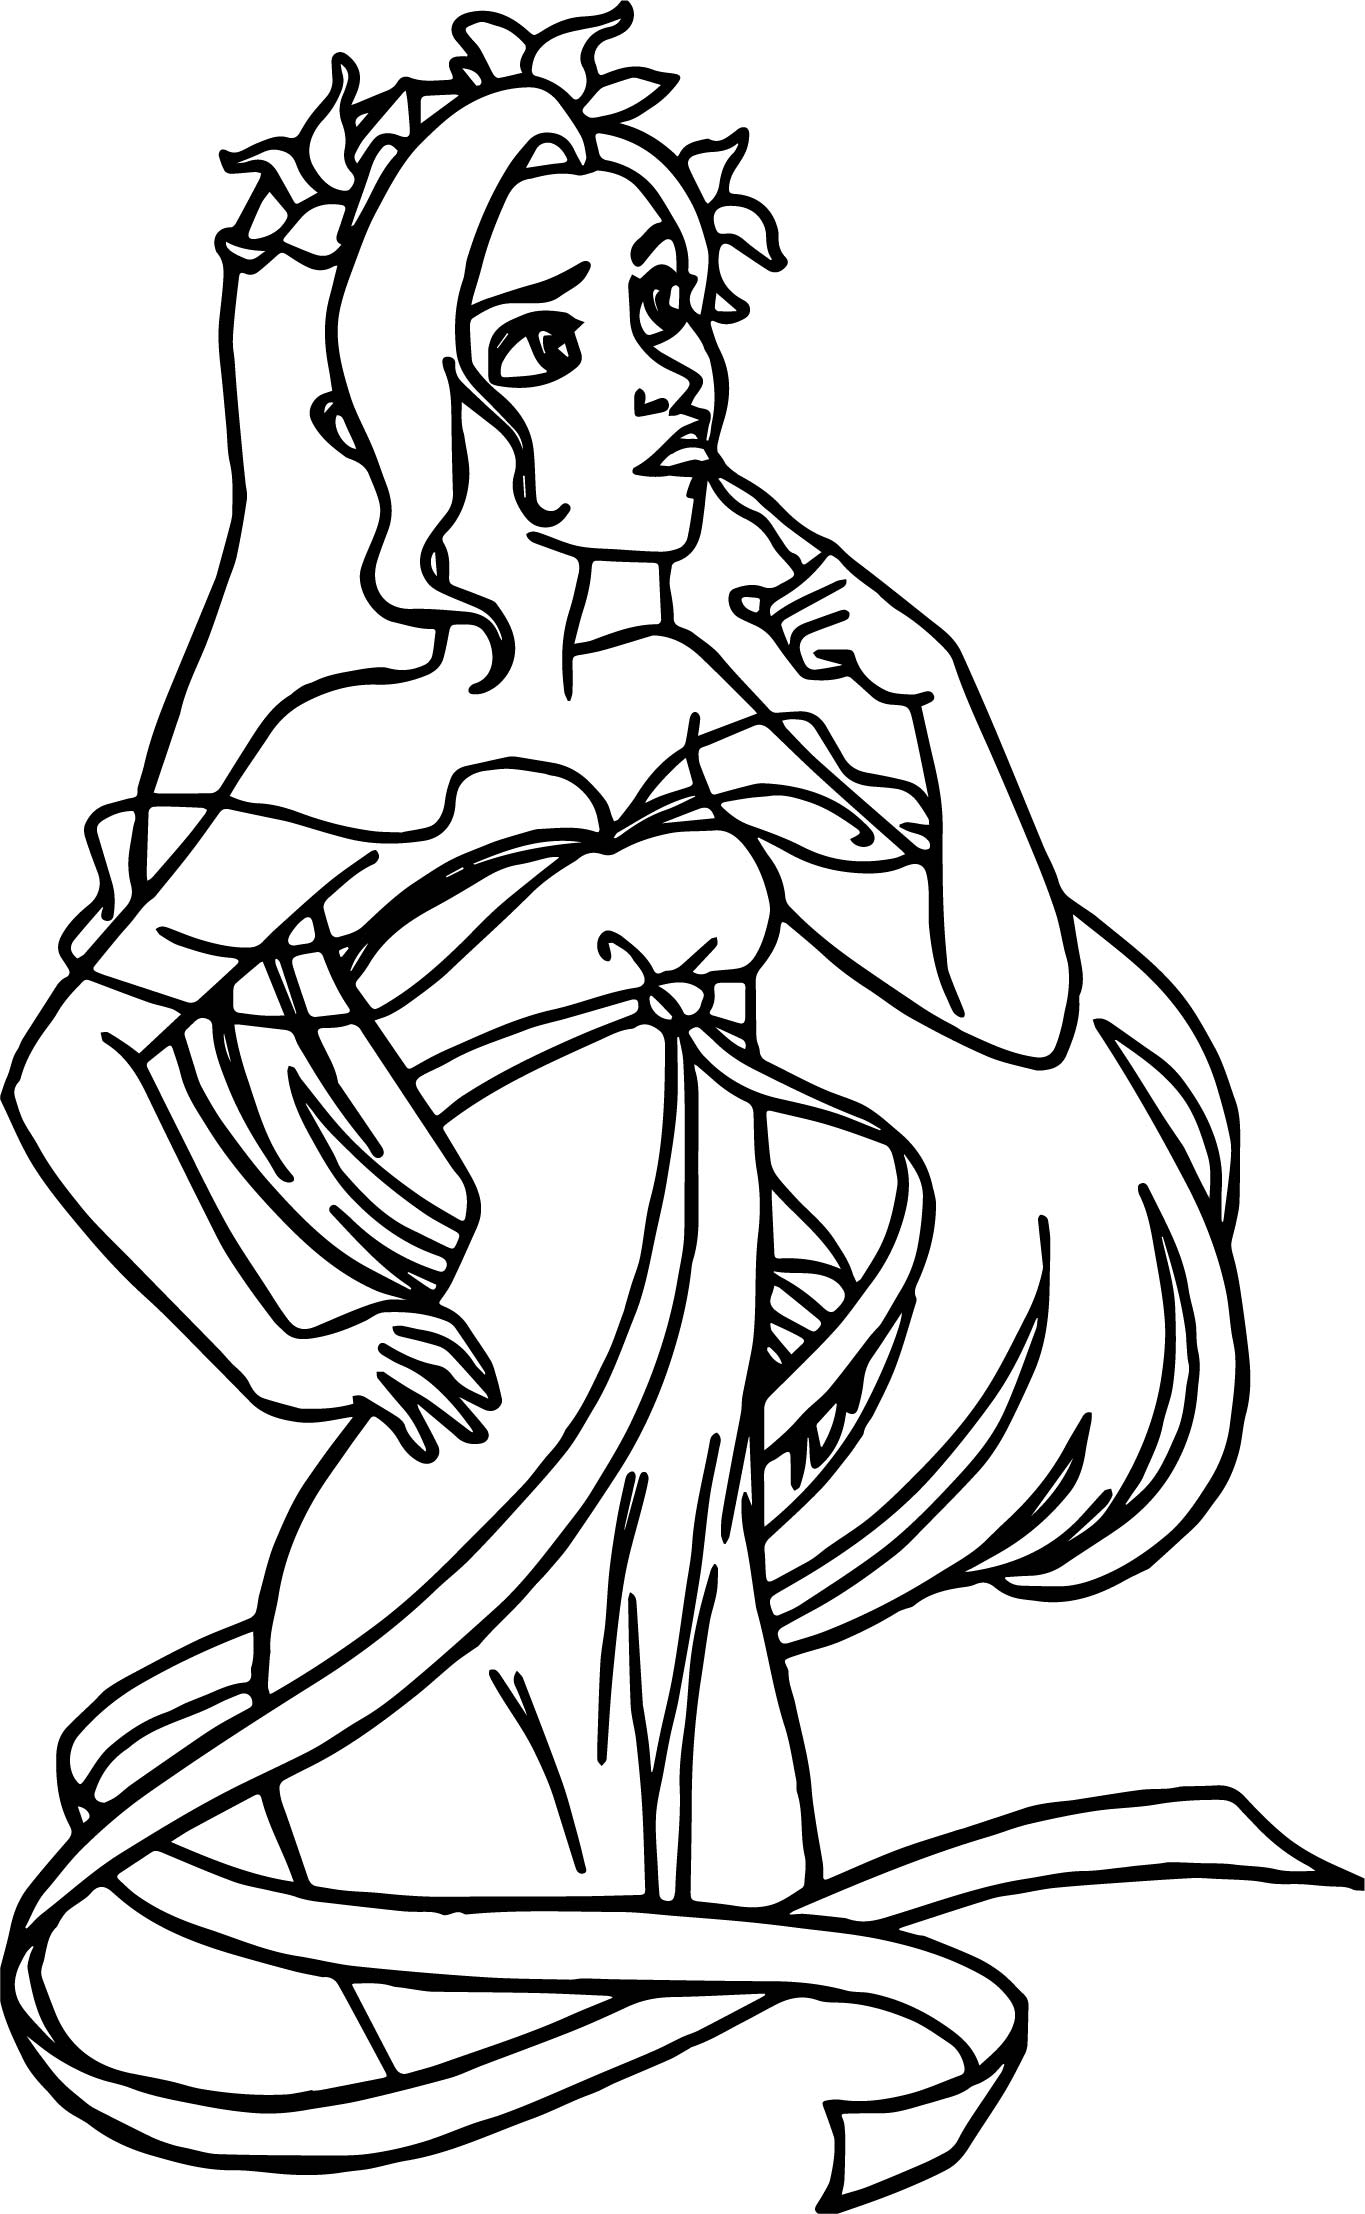 disney enchanted thinking princess thinking coloring pages